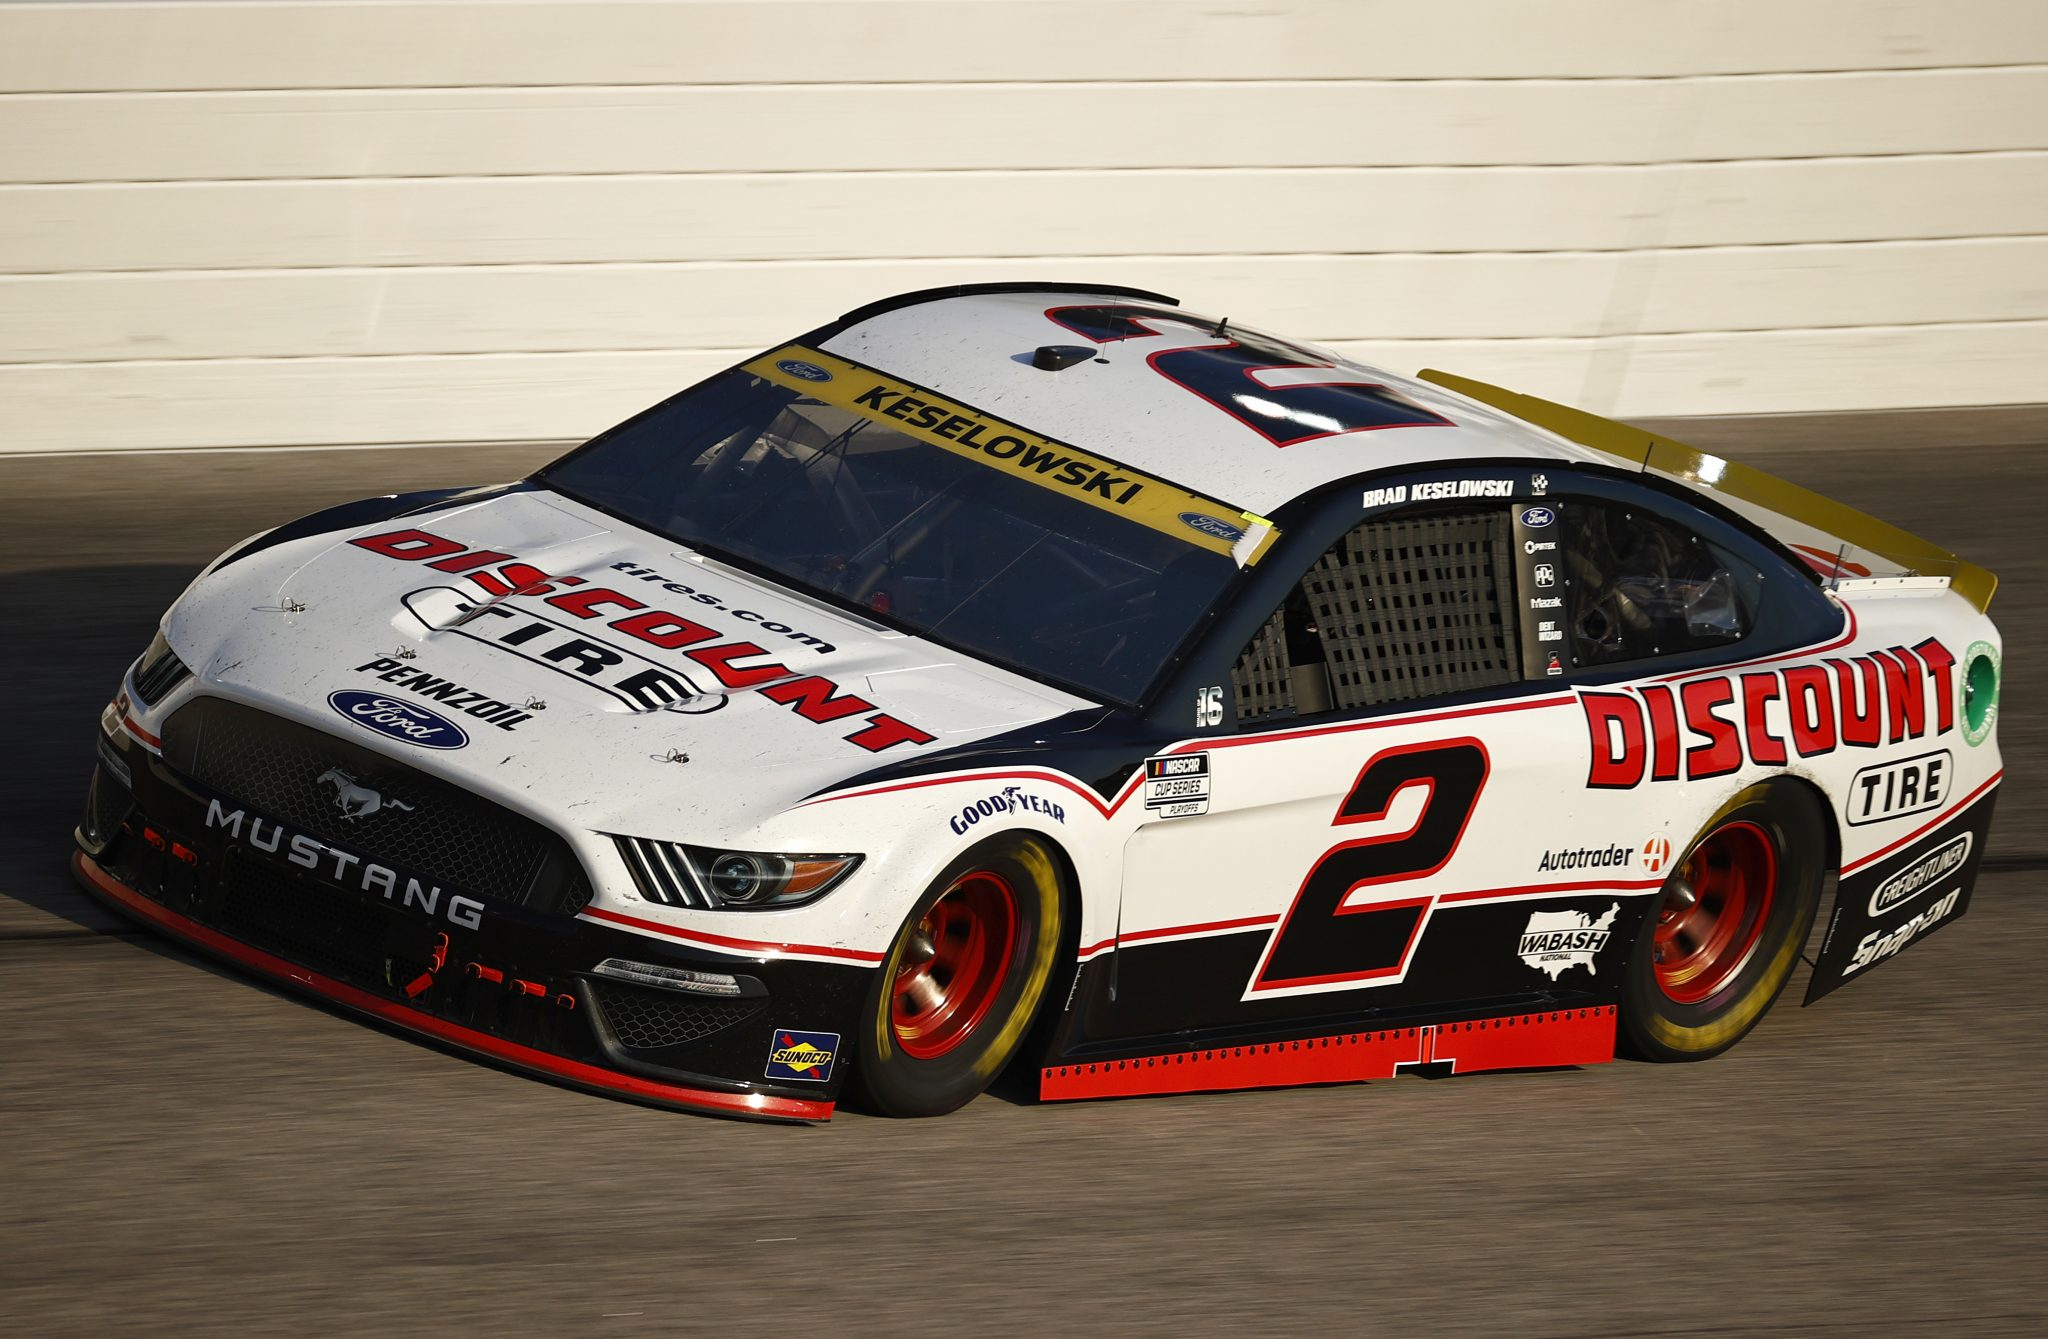 DARLINGTON, SOUTH CAROLINA - SEPTEMBER 05: Brad Keselowski, driver of the #2 Discount Tire Ford, drives during the NASCAR Cup Series Cook Out Southern 500 at Darlington Raceway on September 05, 2021 in Darlington, South Carolina. (Photo by Jared C. Tilton/Getty Images)   Getty Images